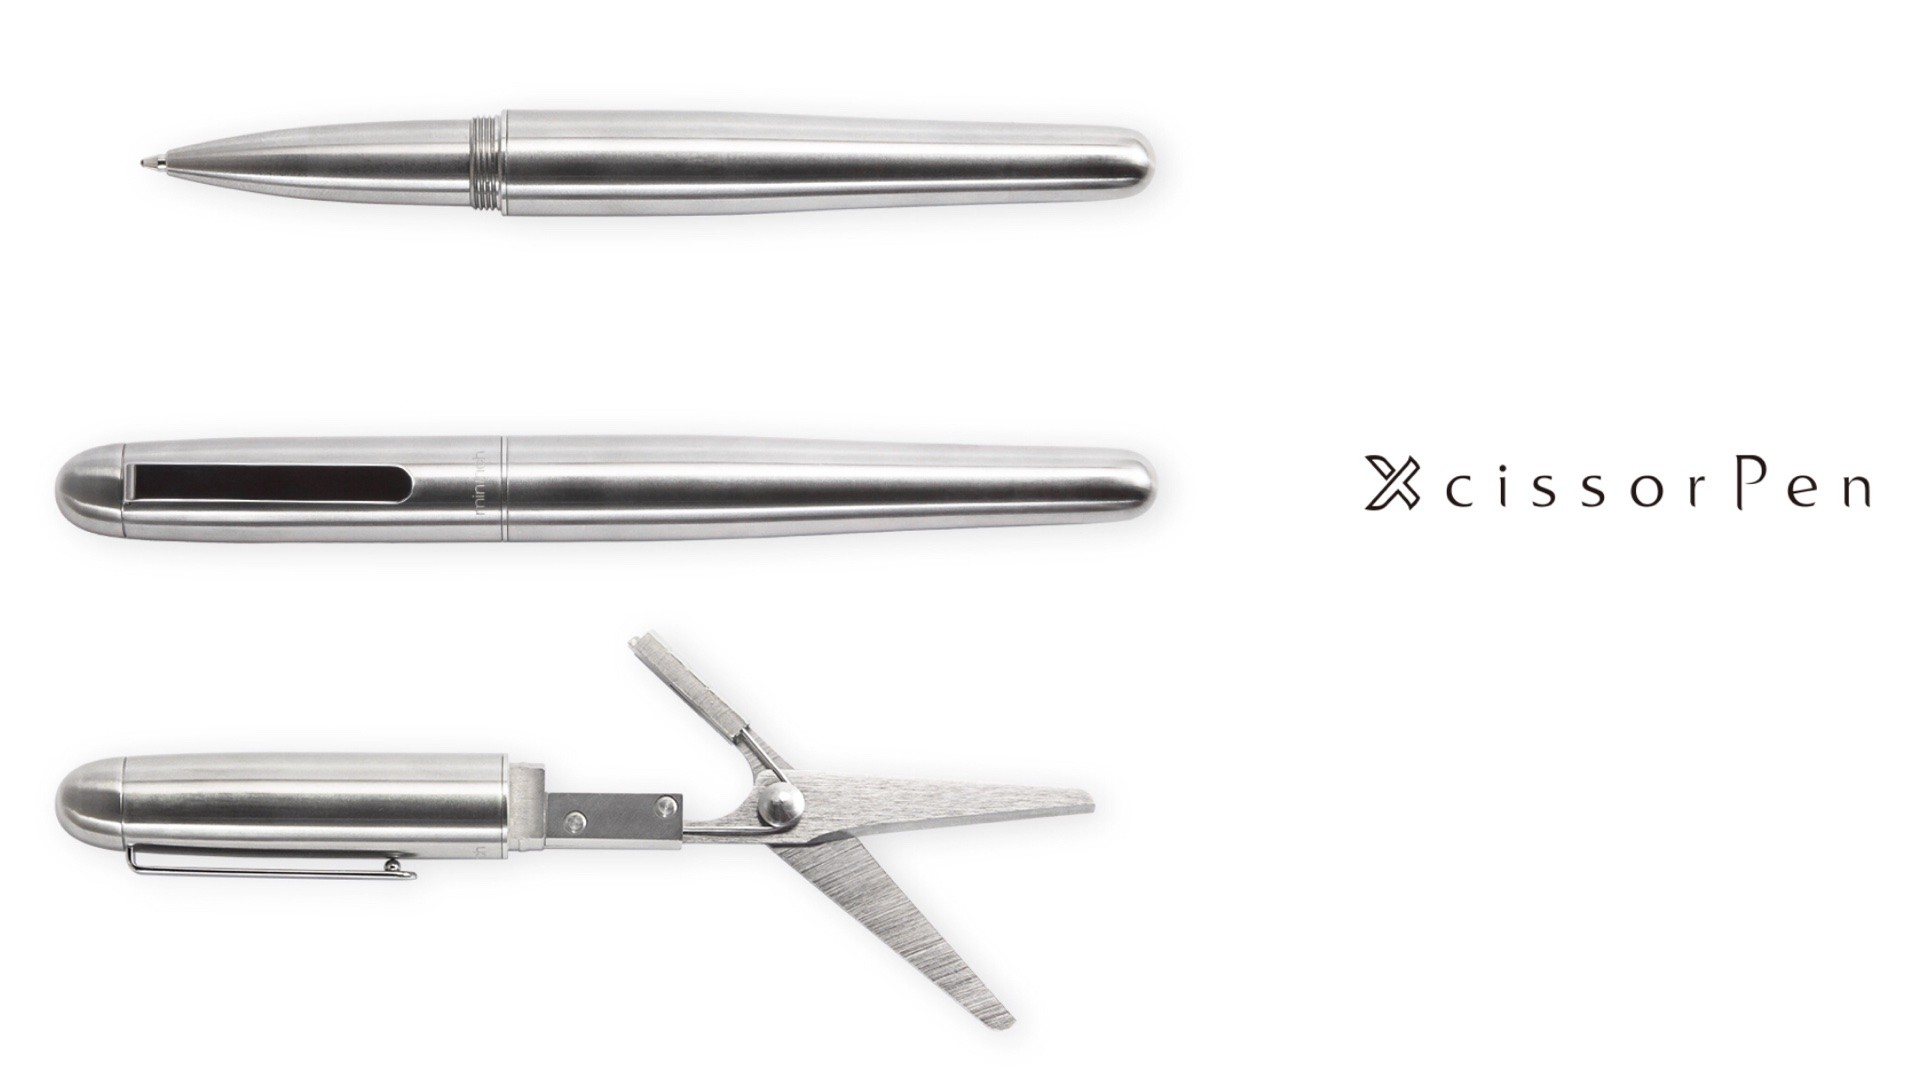 The Xcissor Pen by mininch. ($66)